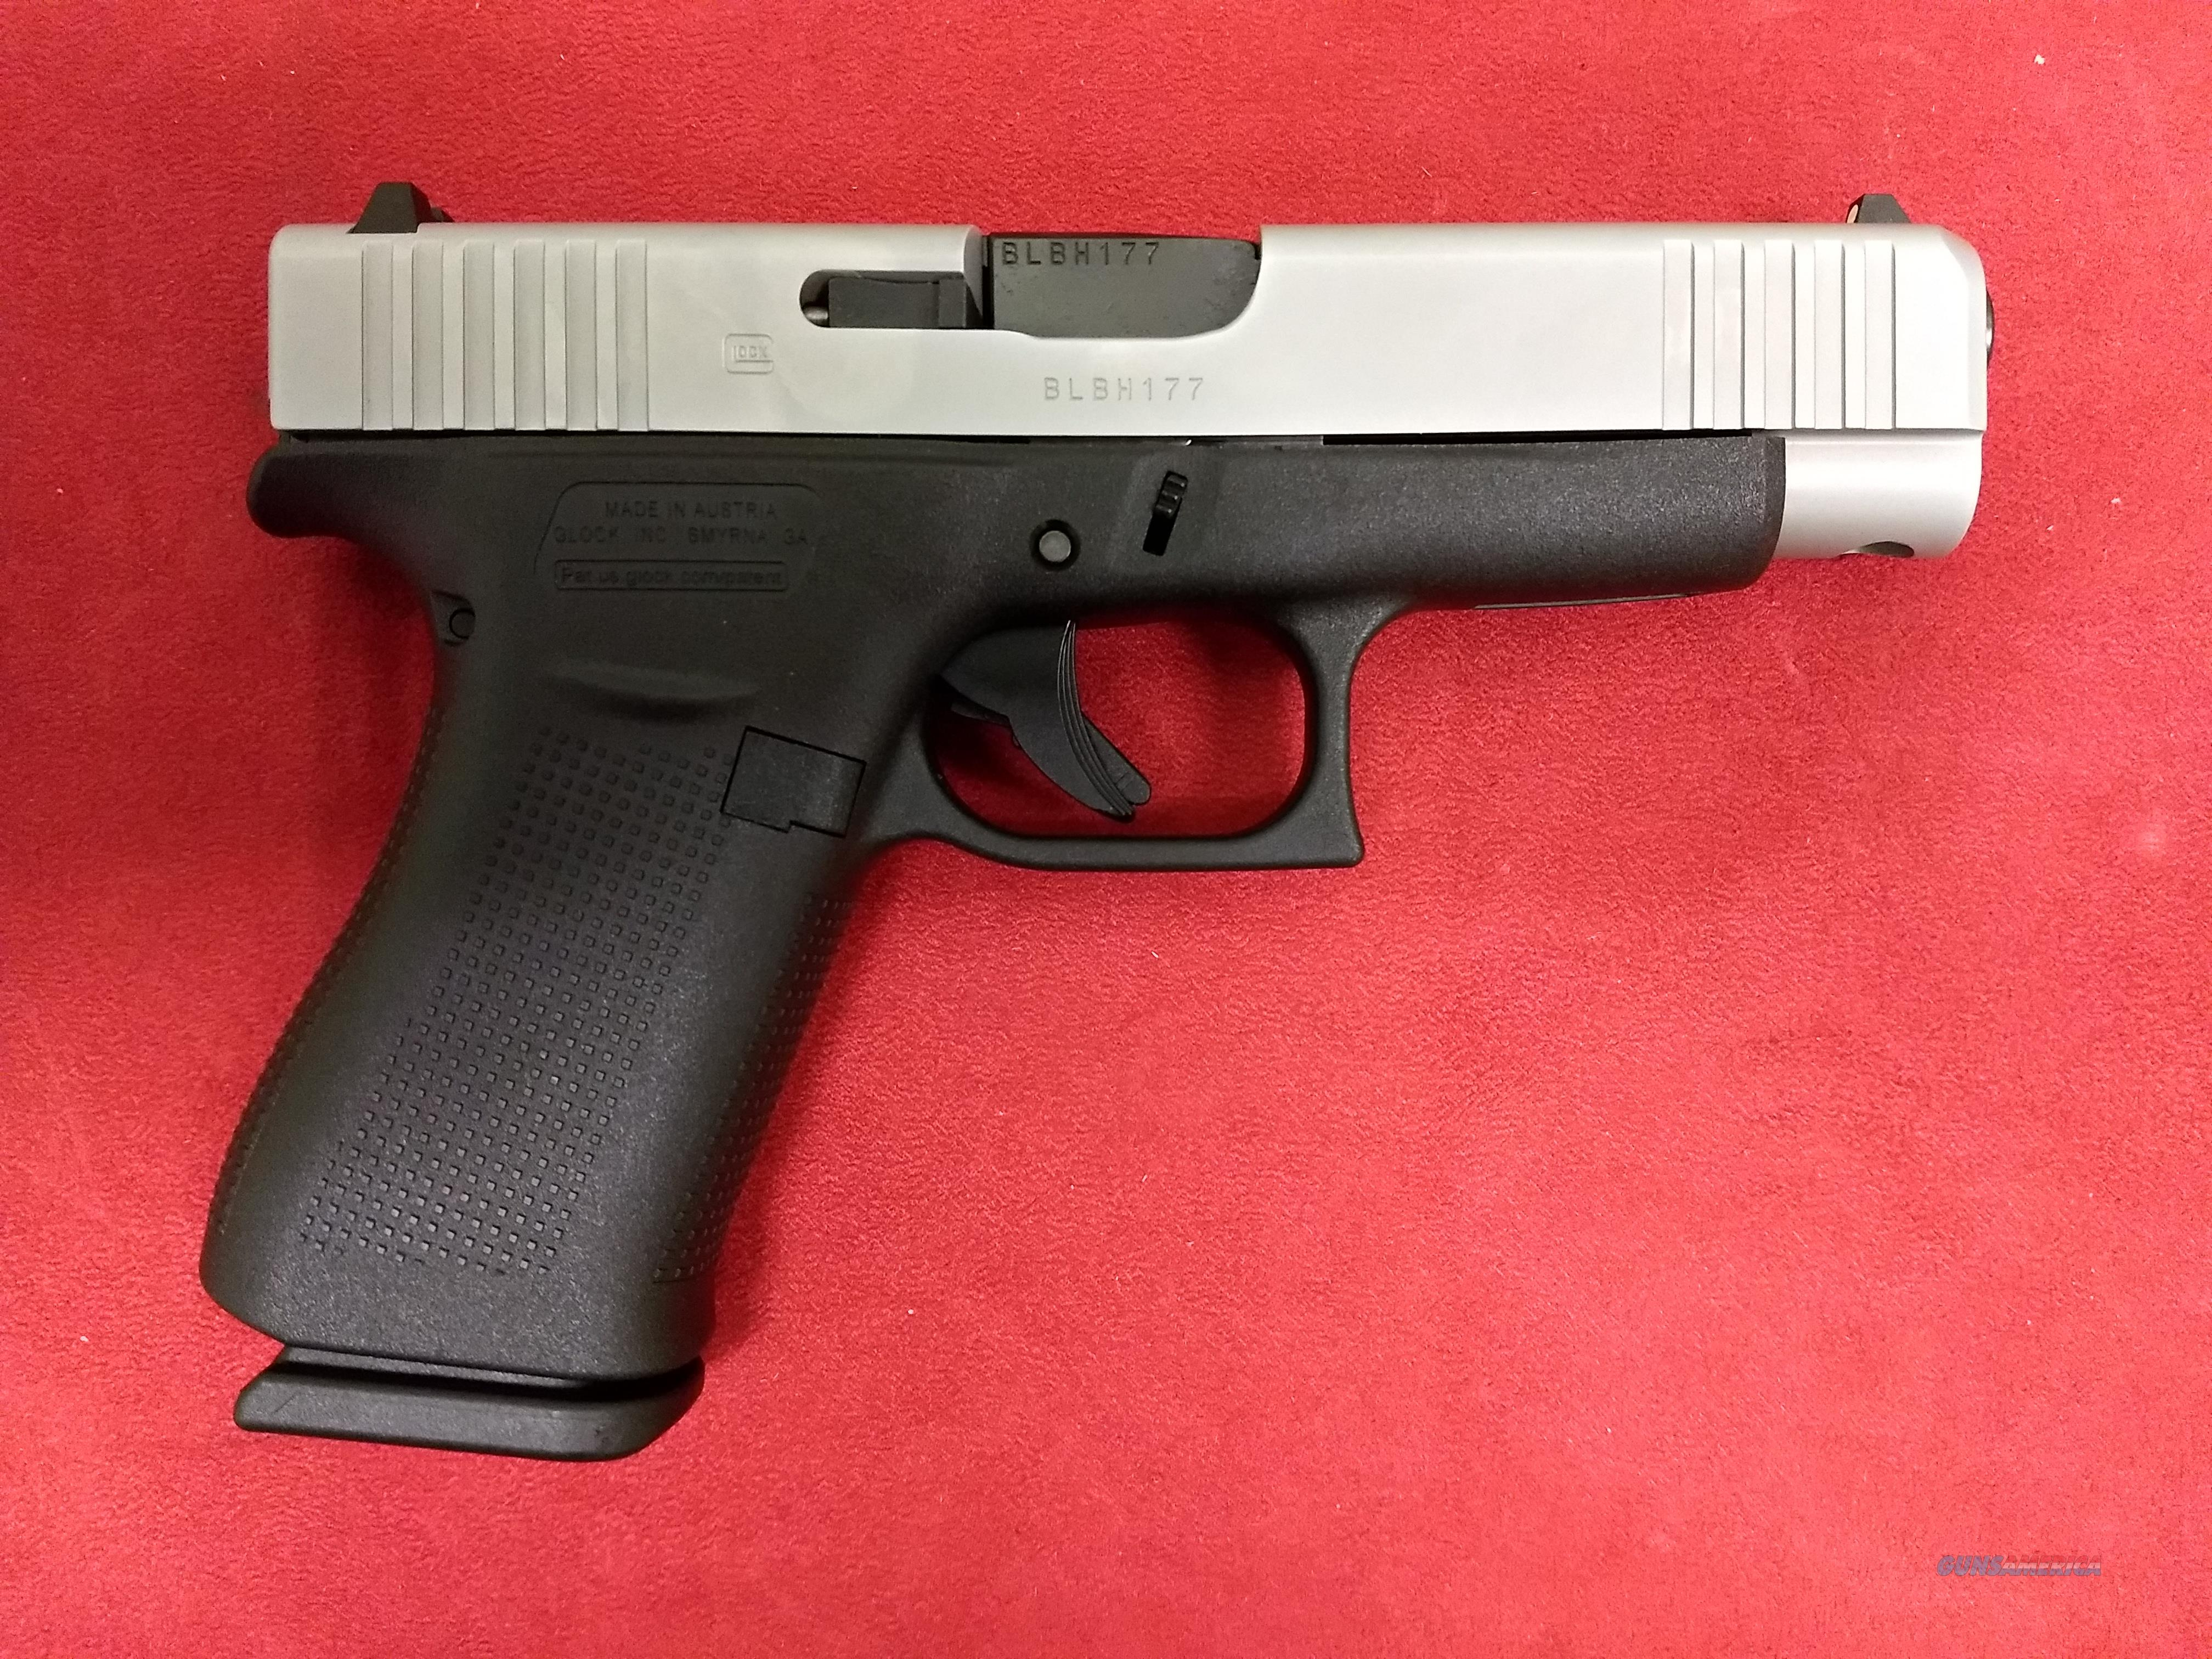 Glock Model 48, 9mm, Two-Tone, NIB  Guns > Pistols > Glock Pistols > 43